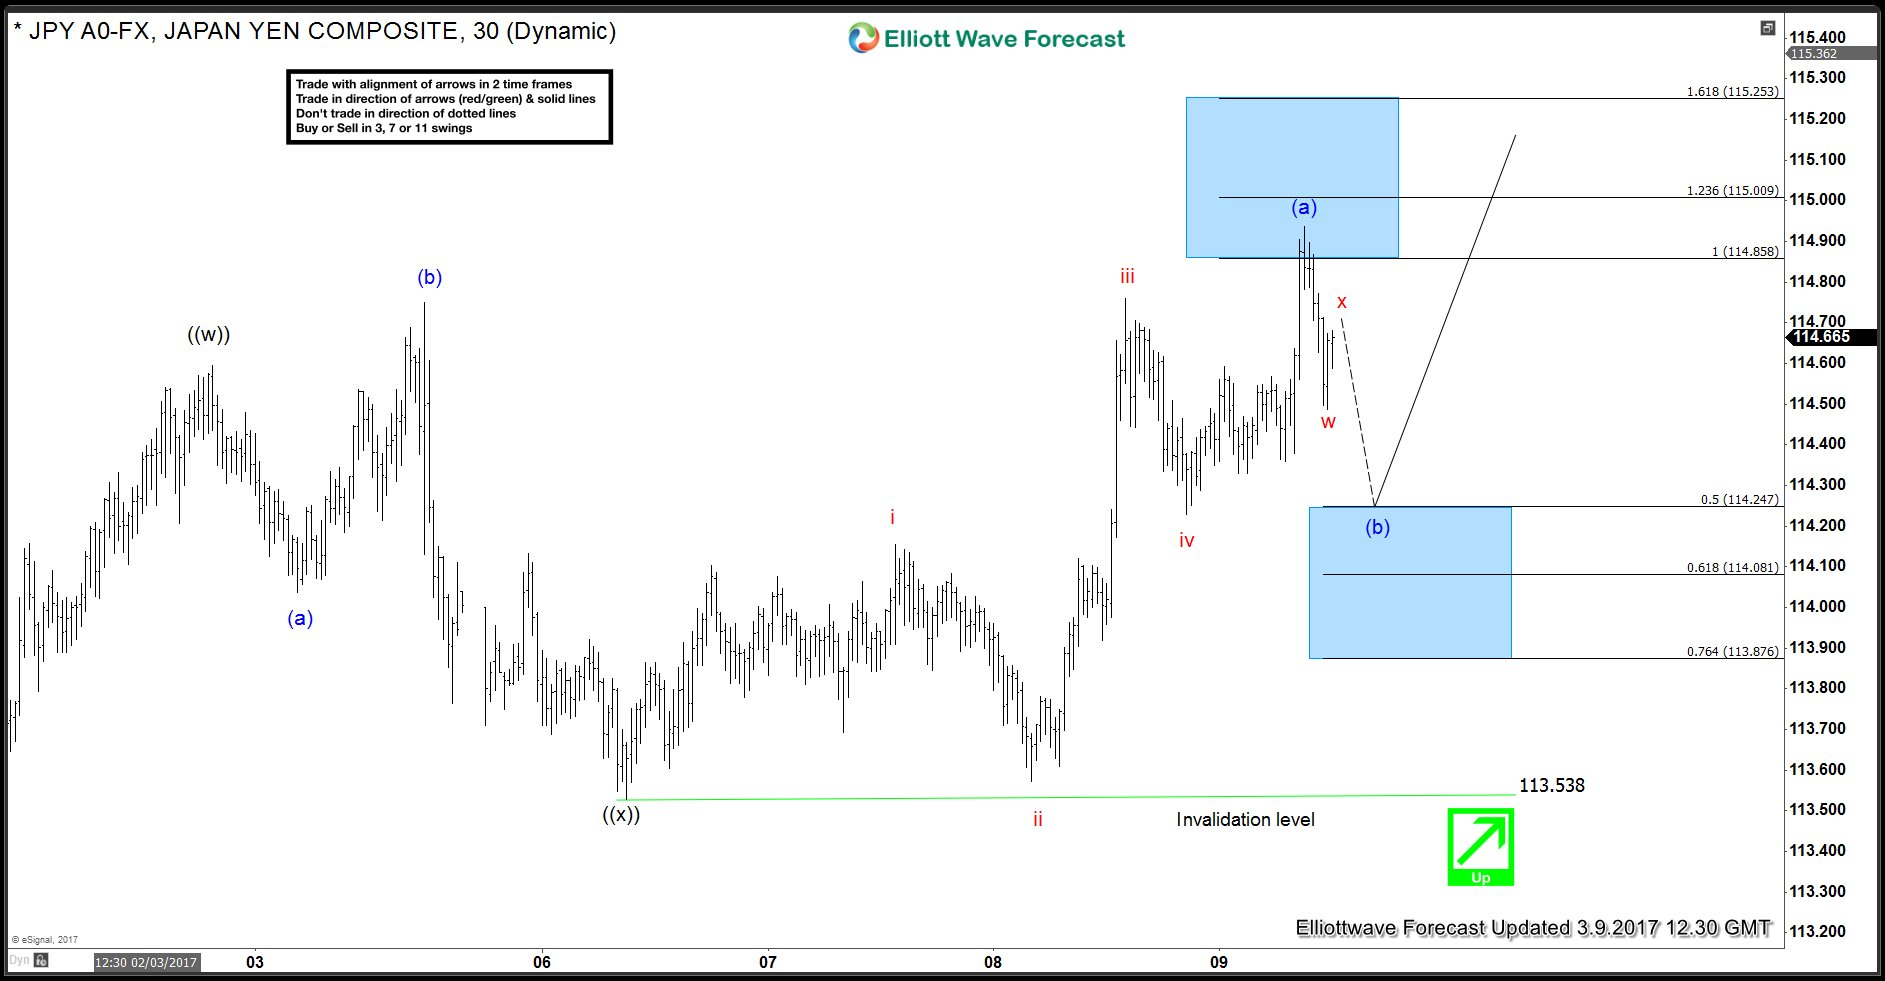 JPY (USDJPY) Intra-day Elliott wave chart 3.9.2017